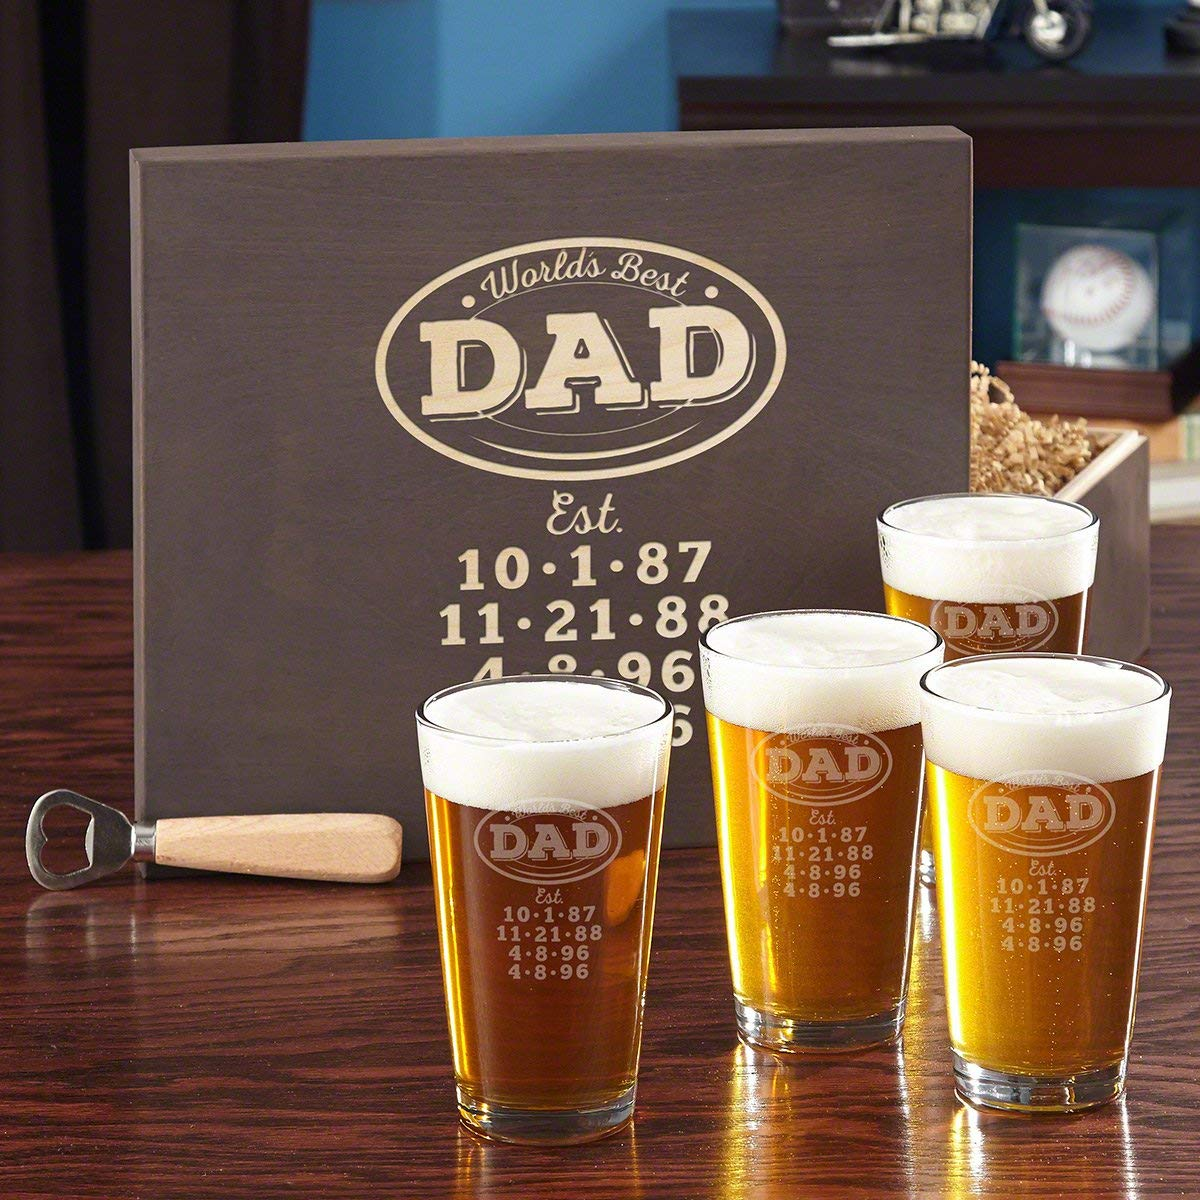 a23f675b0 Get Quotations · World s Best Dad Personalized Beer Glass Set with Custom  Wood Gift Box (Customizable Product)